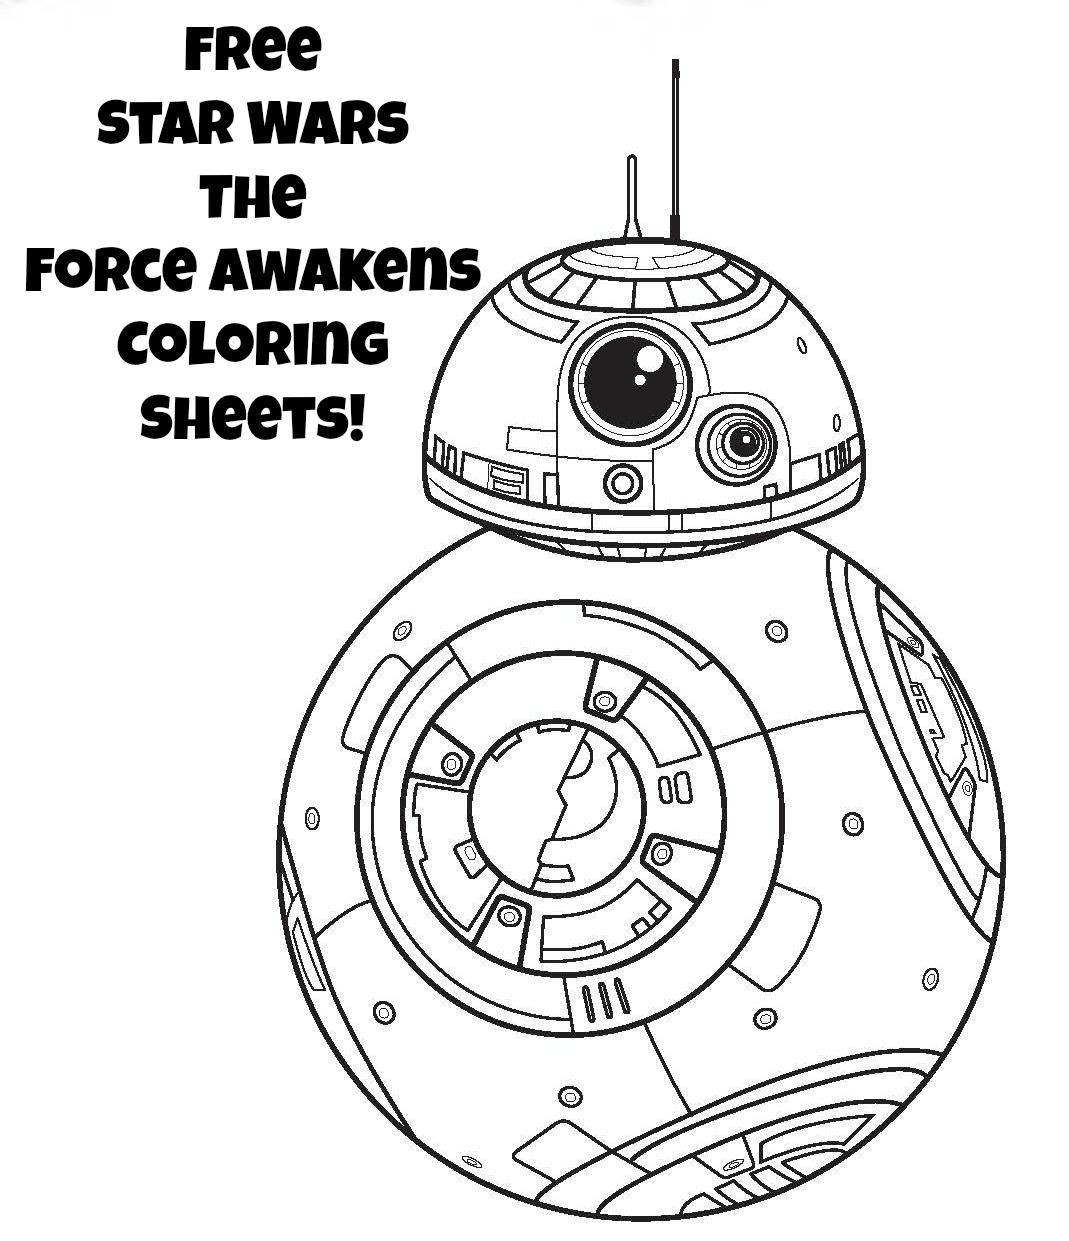 Star Wars the force Awakens Coloring Pages - Star Wars Coloring Pages the force Awakens Coloring Pages Download